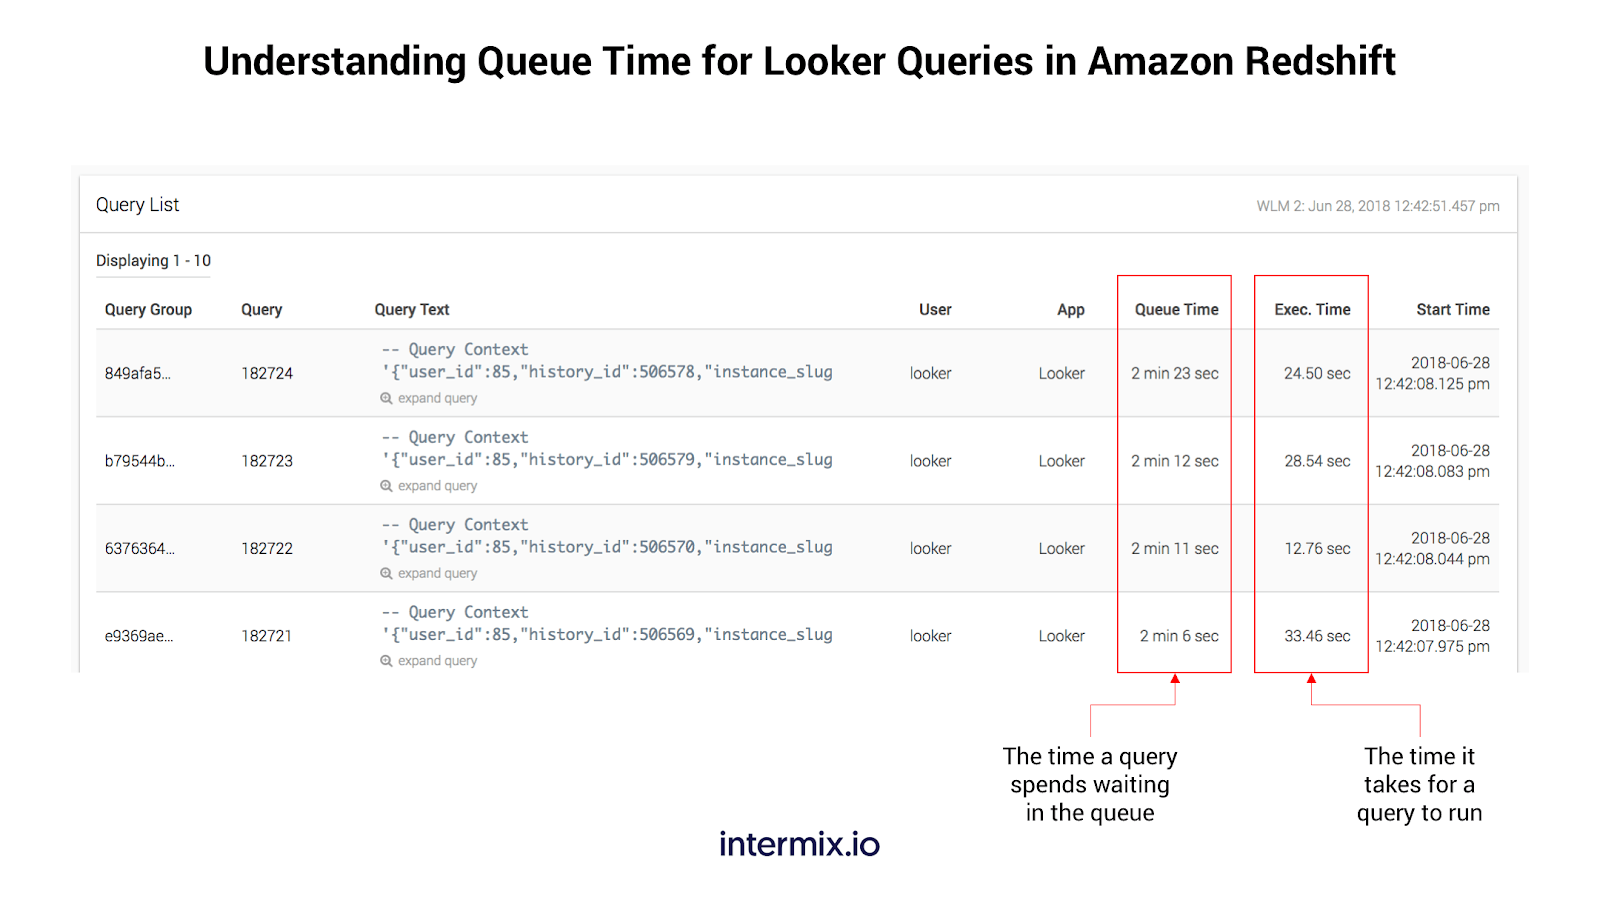 Queue wait time for Looker Queries in intermix.io